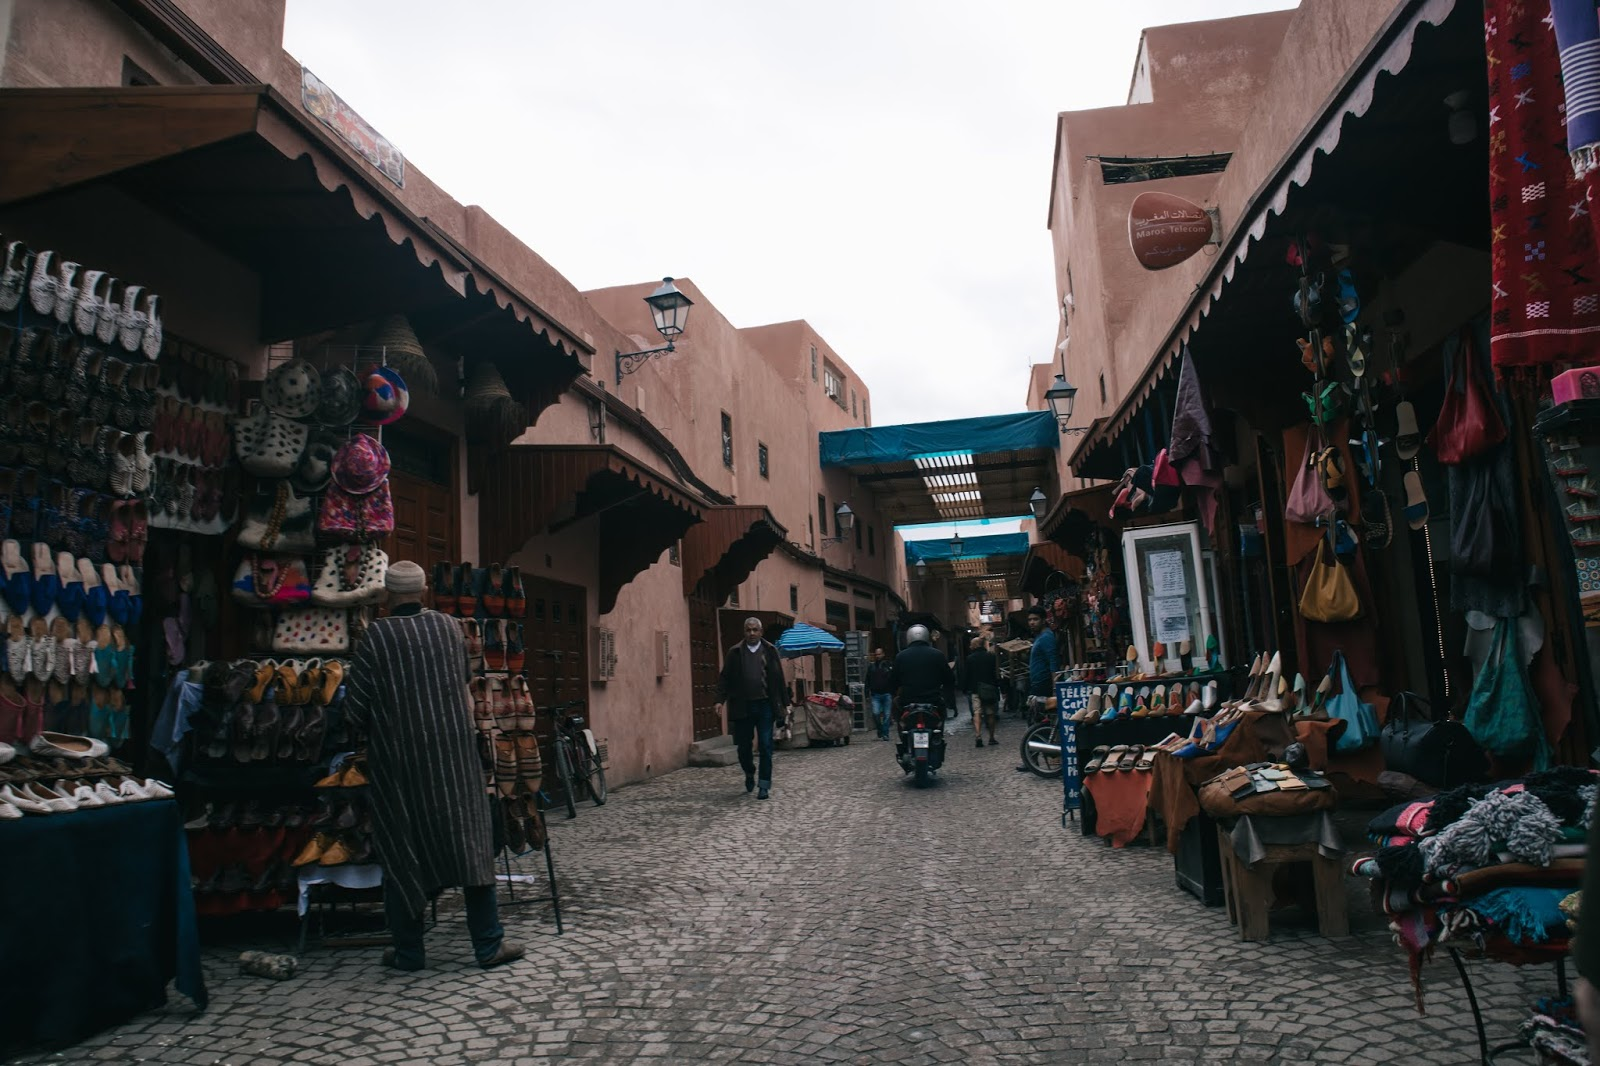 impressions of Marrakesh, Marrakech November 2018, Marrakesh November, Marrakesh travel, Suz and the Sun Travels, Suz & the Sun, Souks of Marrakesh